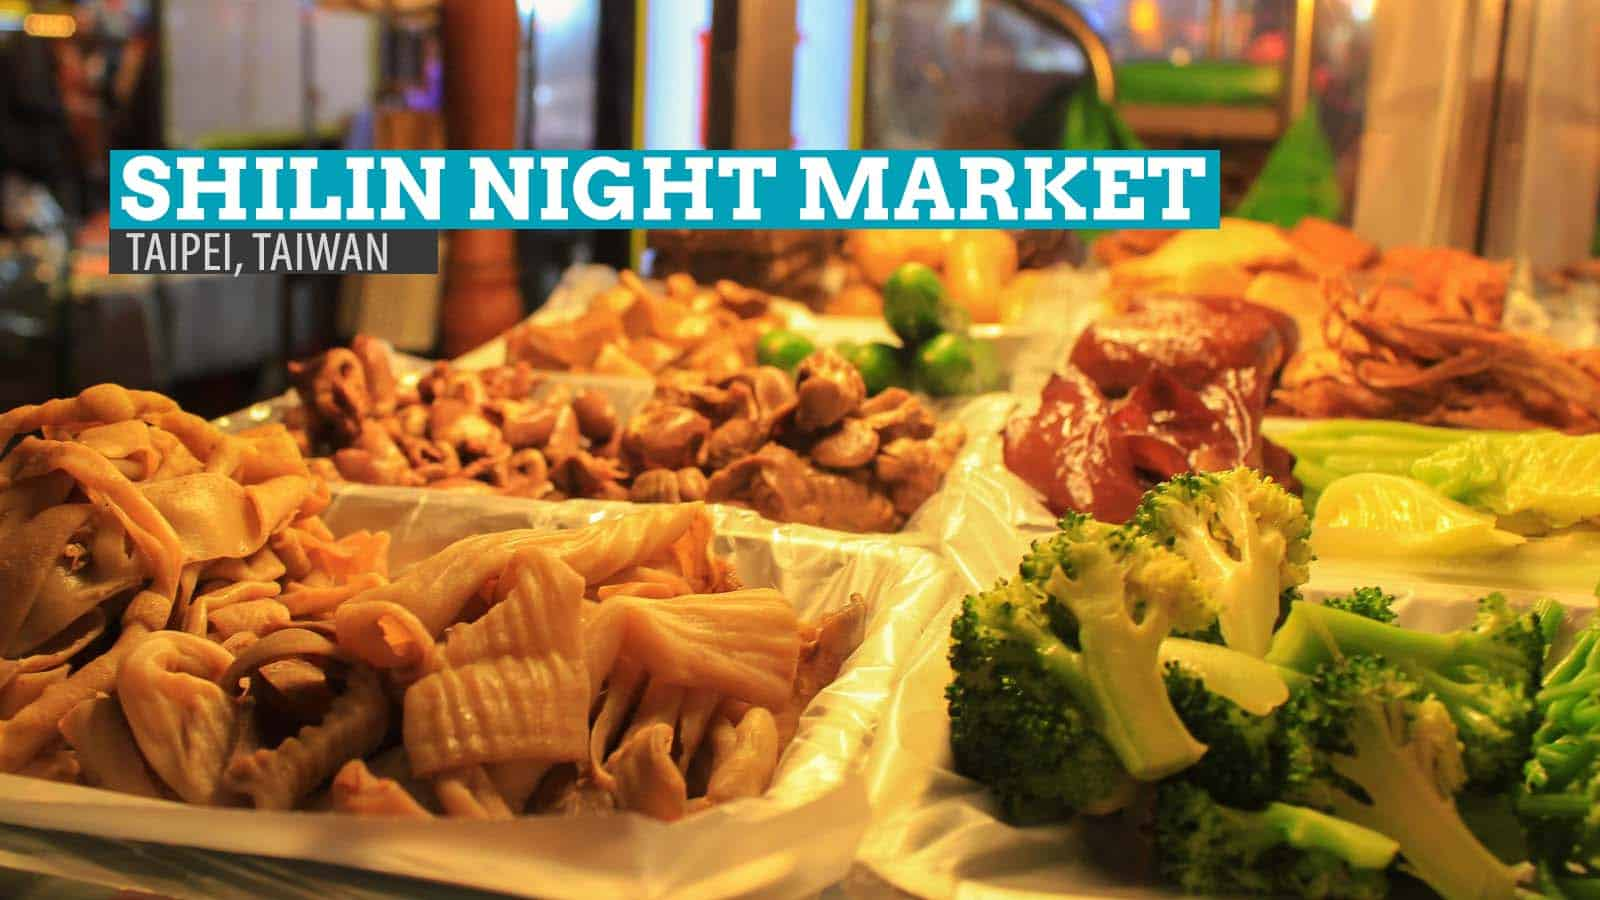 Shilin Night Market: Where to Eat in Taipei, Taiwan